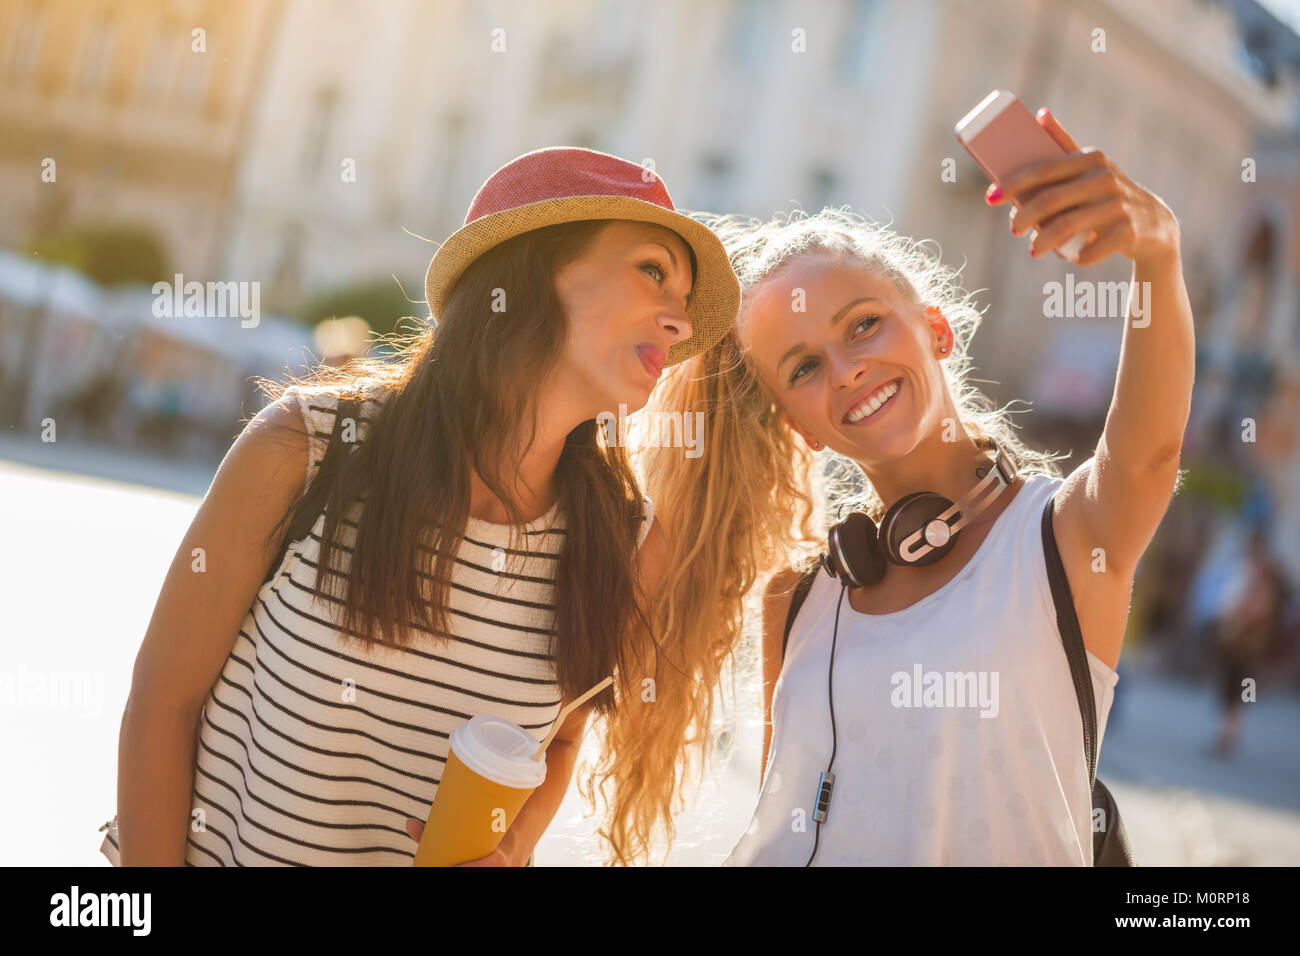 Two happy women are having nice time together in the city. They are taking selfie. - Stock Image